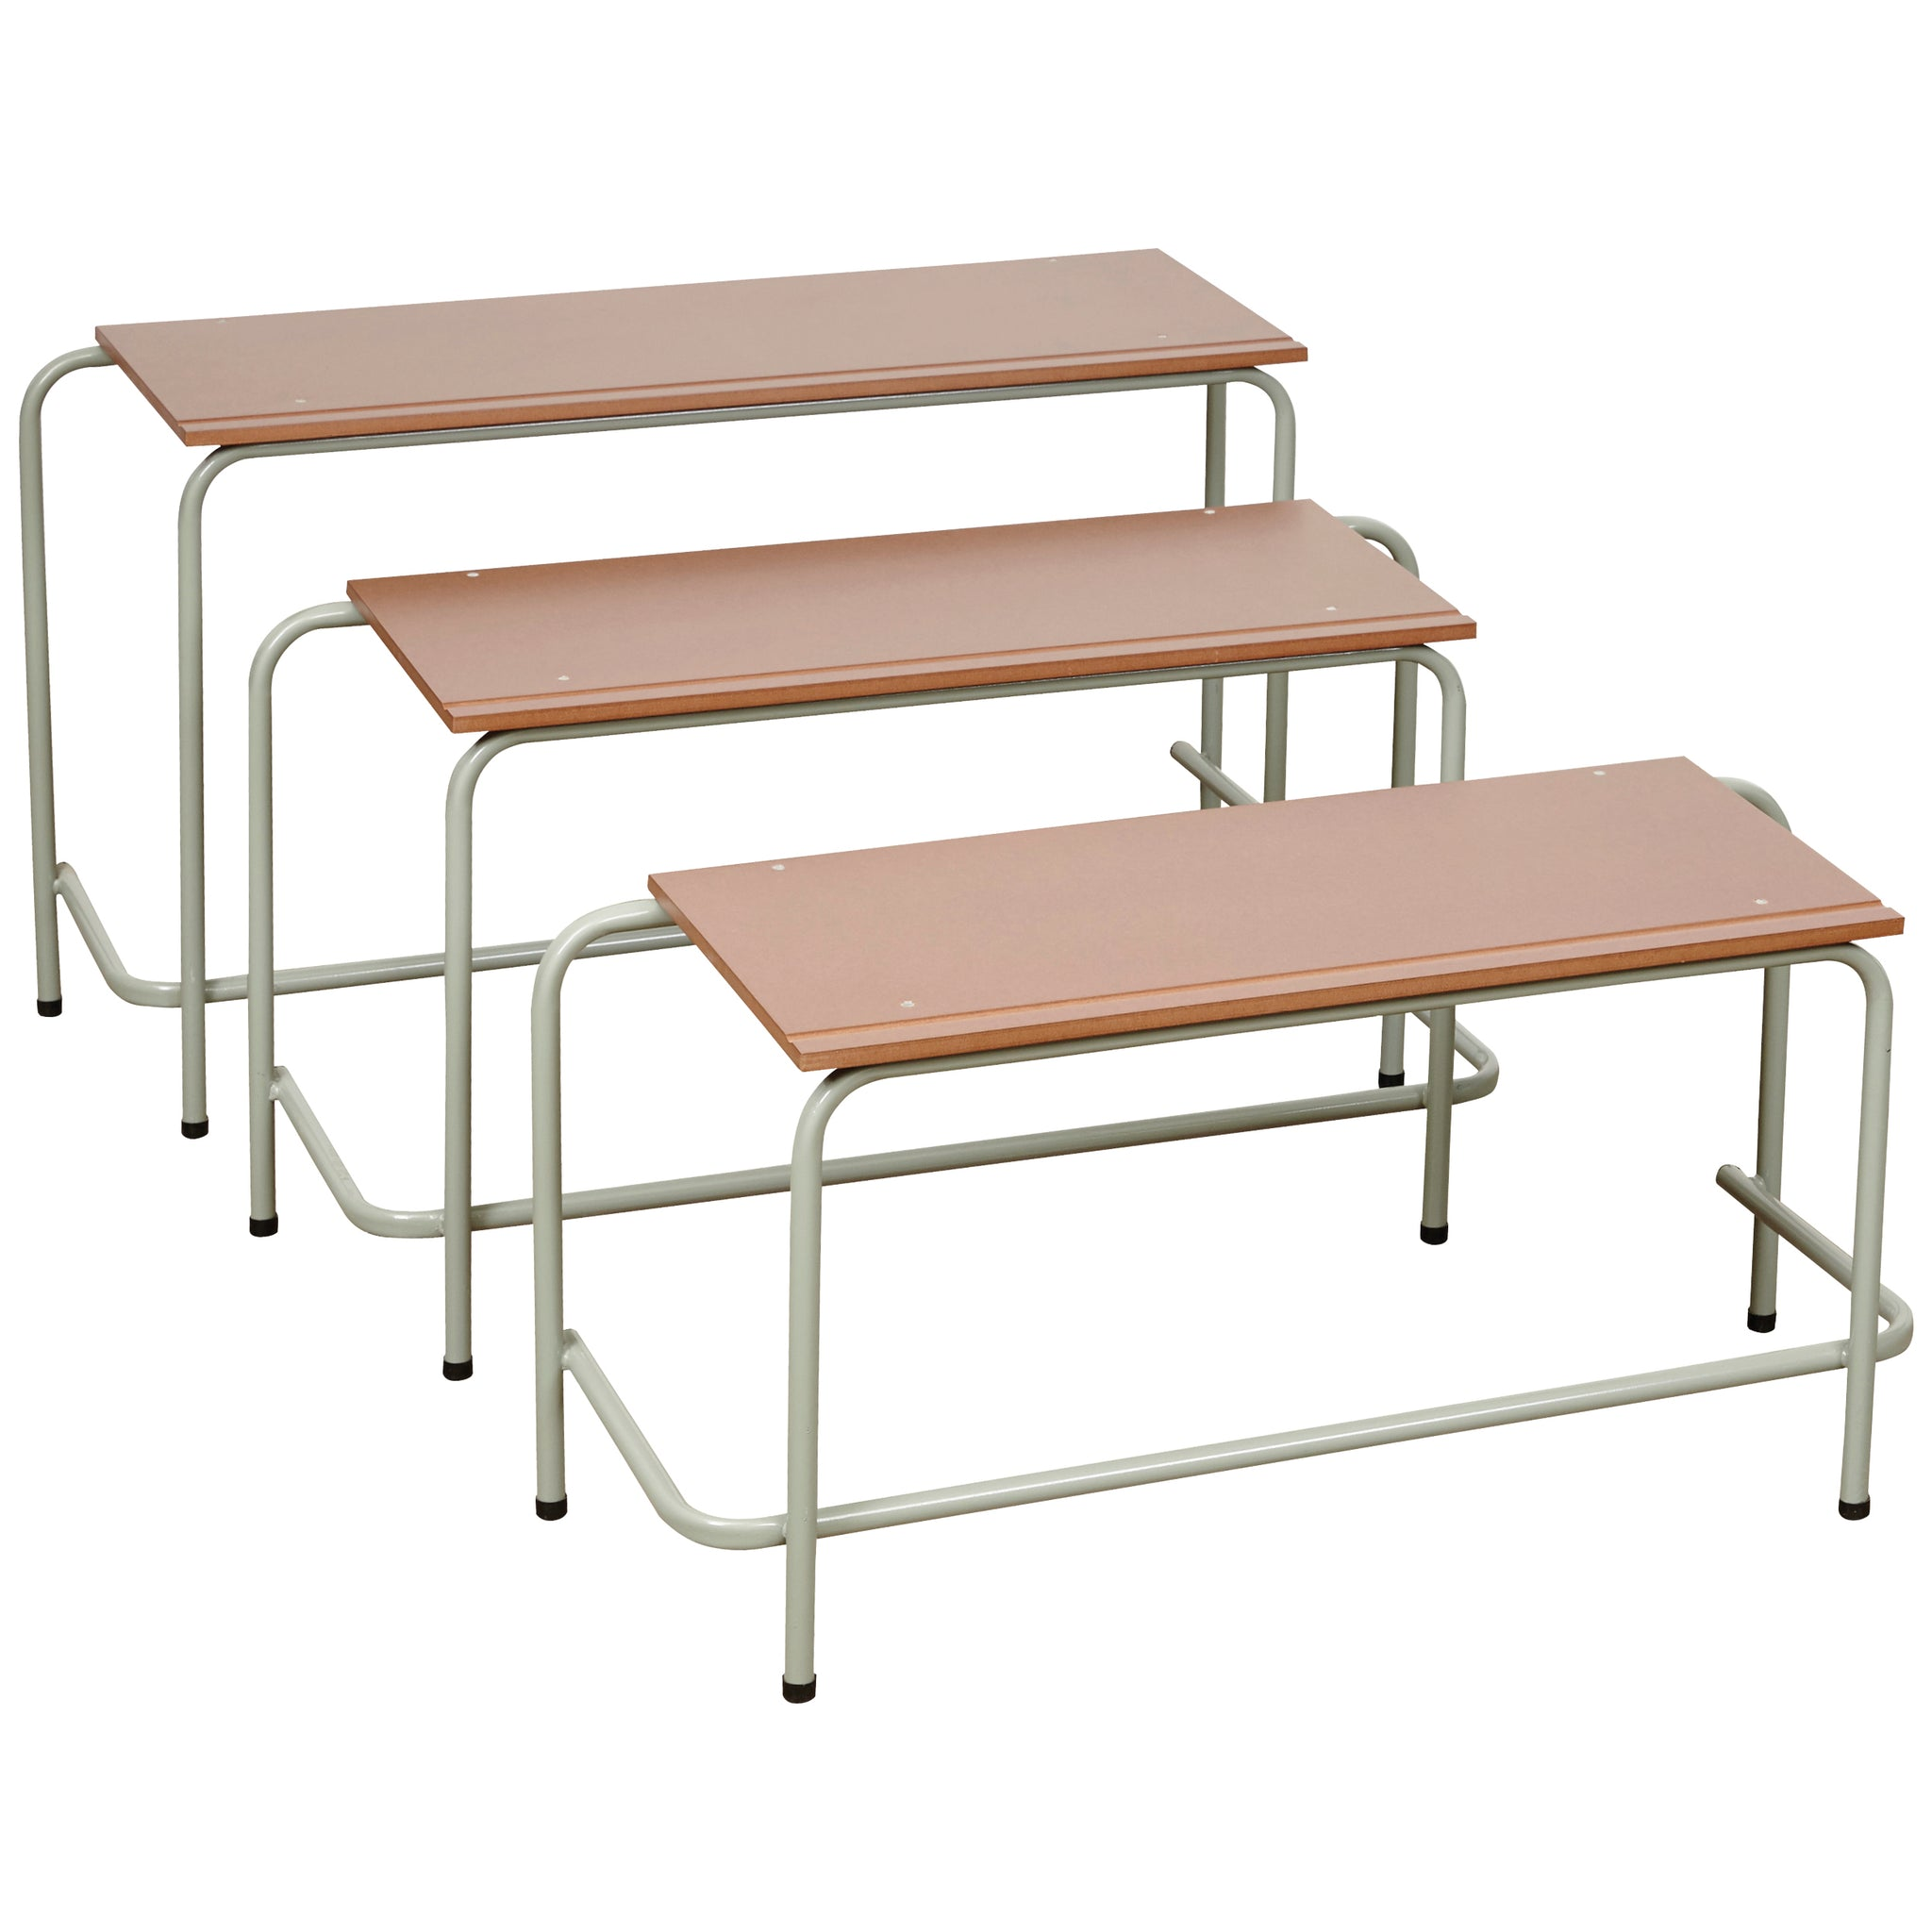 Hedcor School Table Double MDF